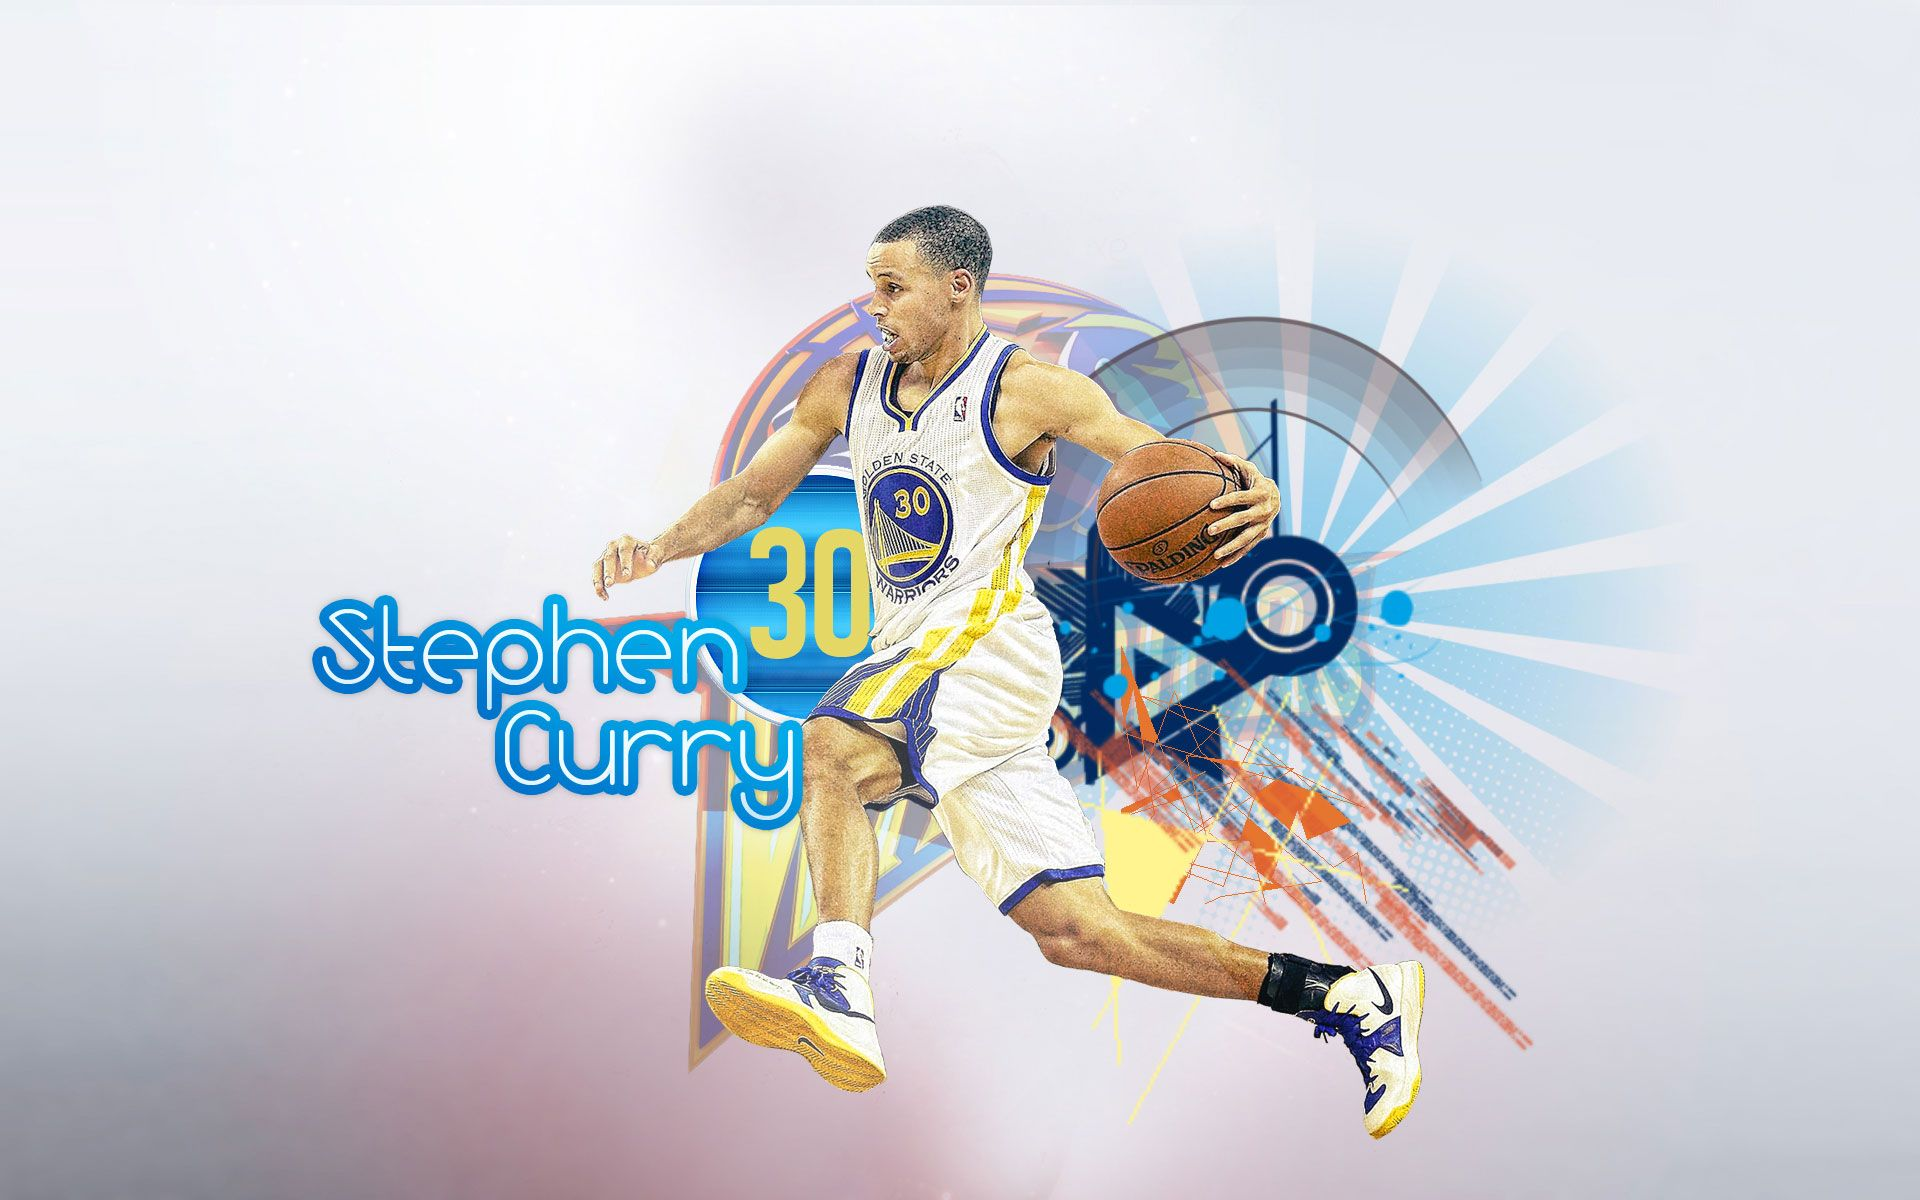 pictures of stephen curry dunking